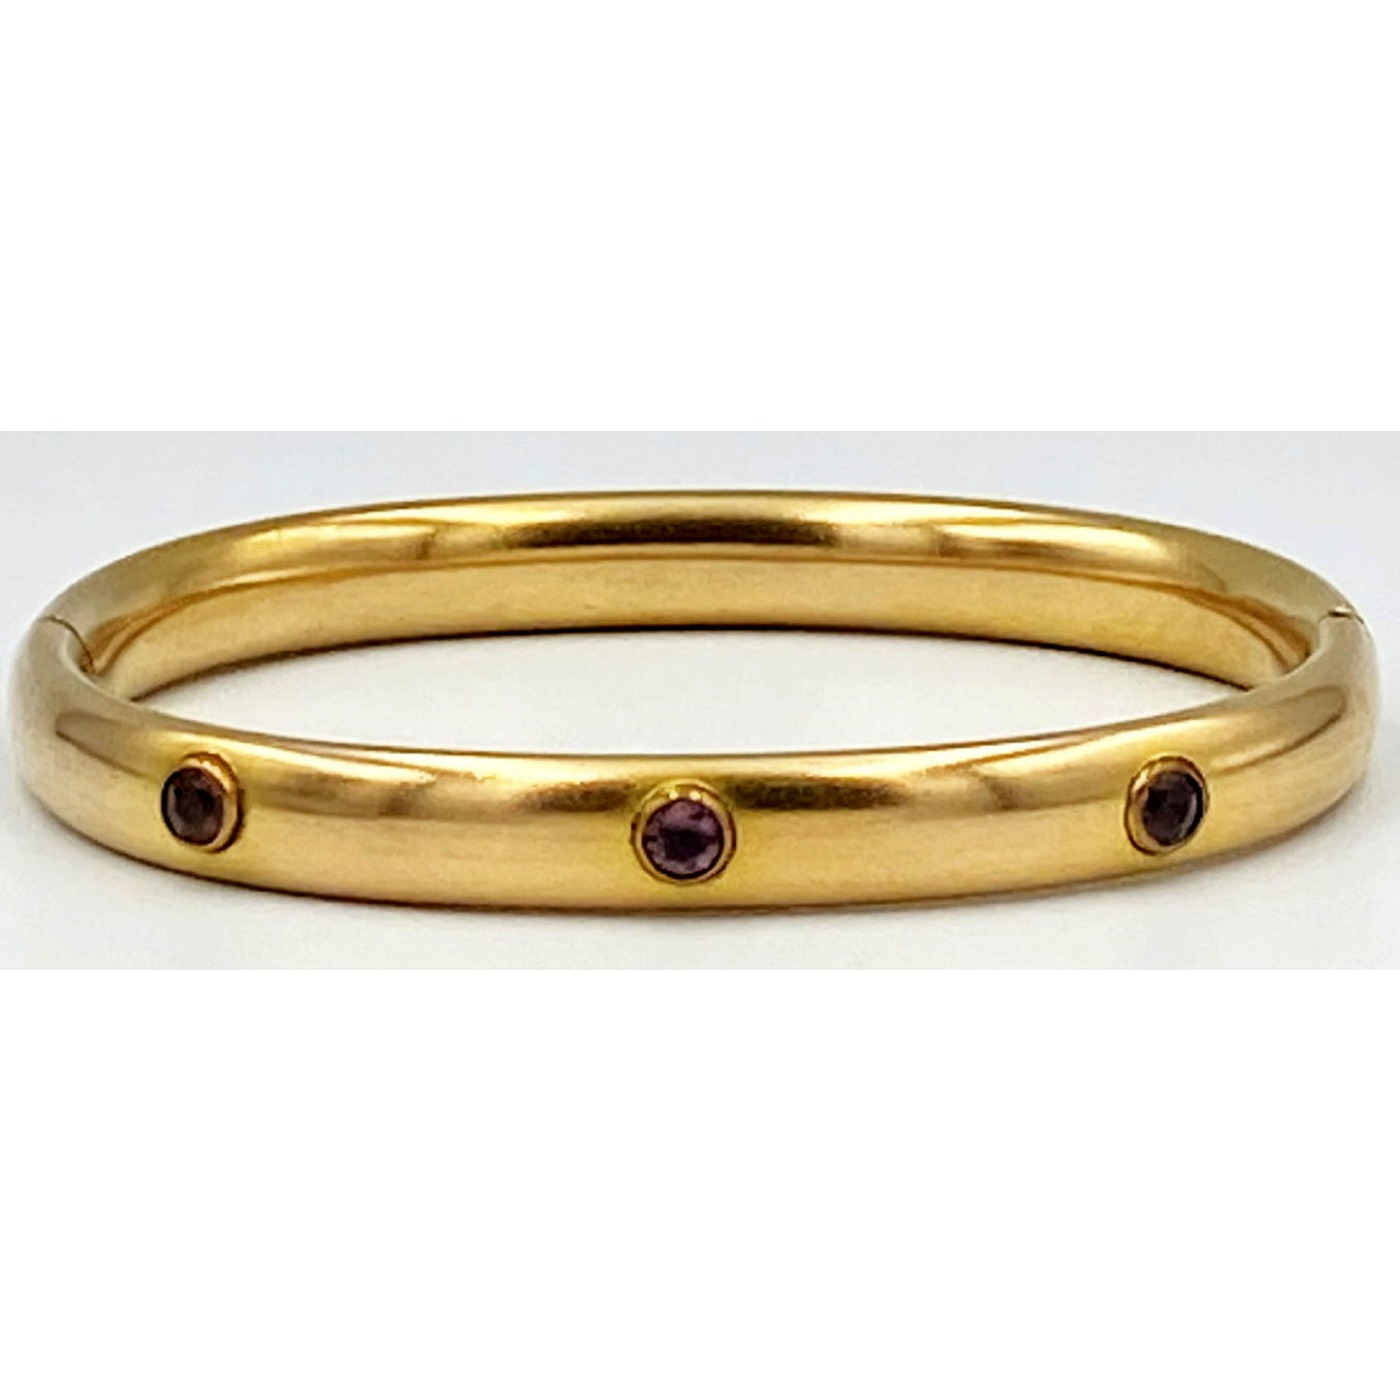 Lovely Simple Bangle with Light Purple Stone